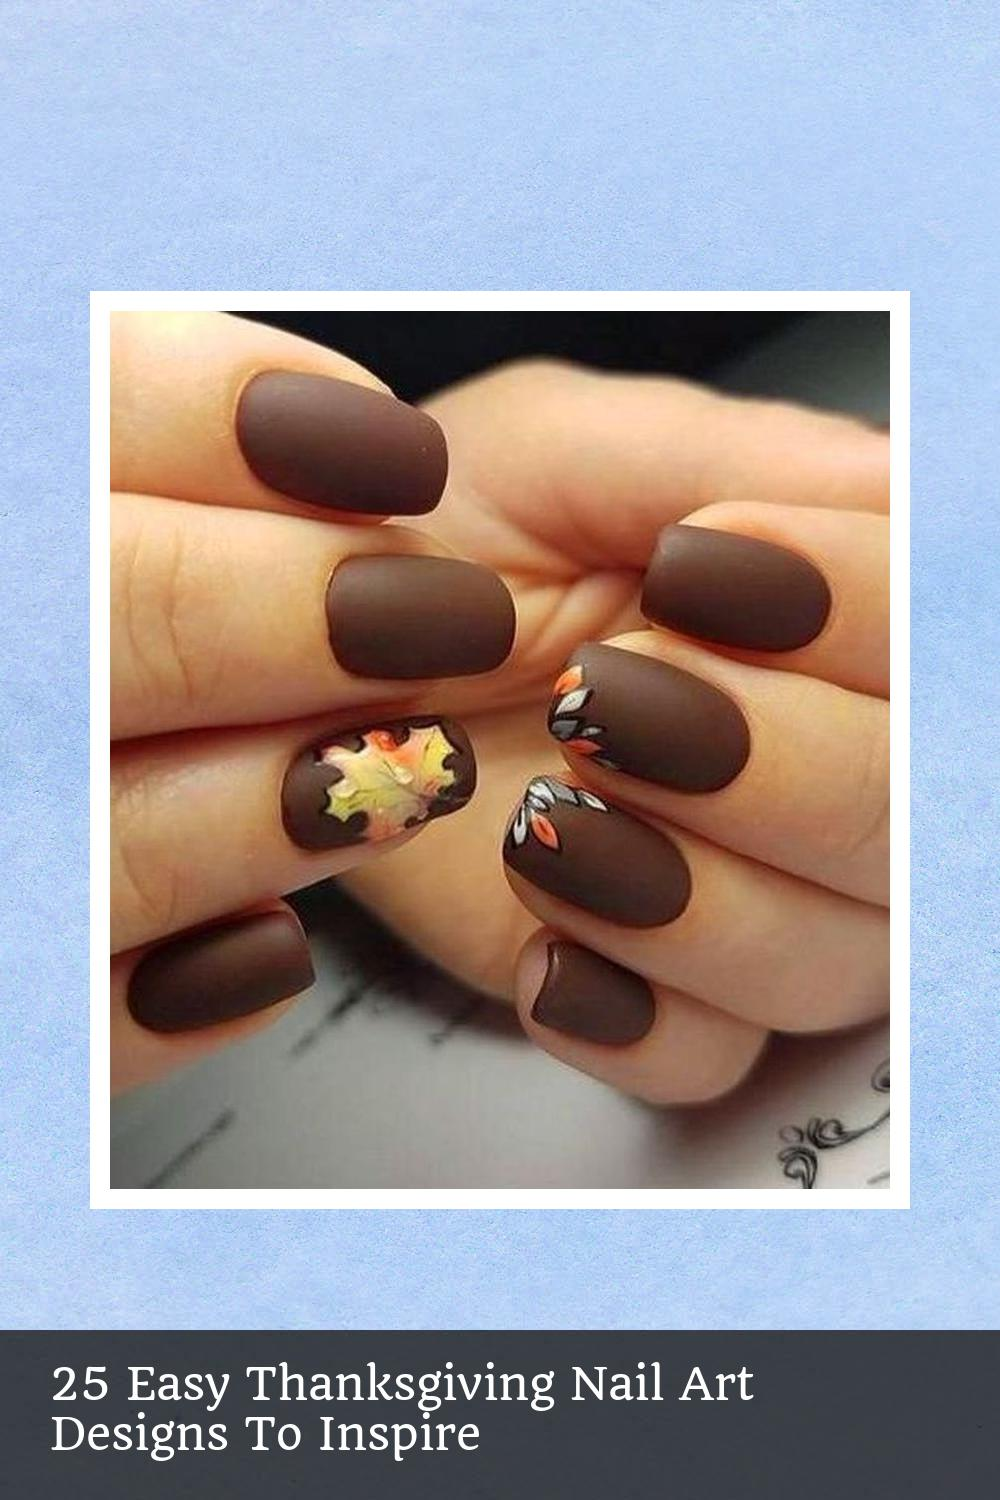 25 Easy Thanksgiving Nail Art Designs To Inspire 16